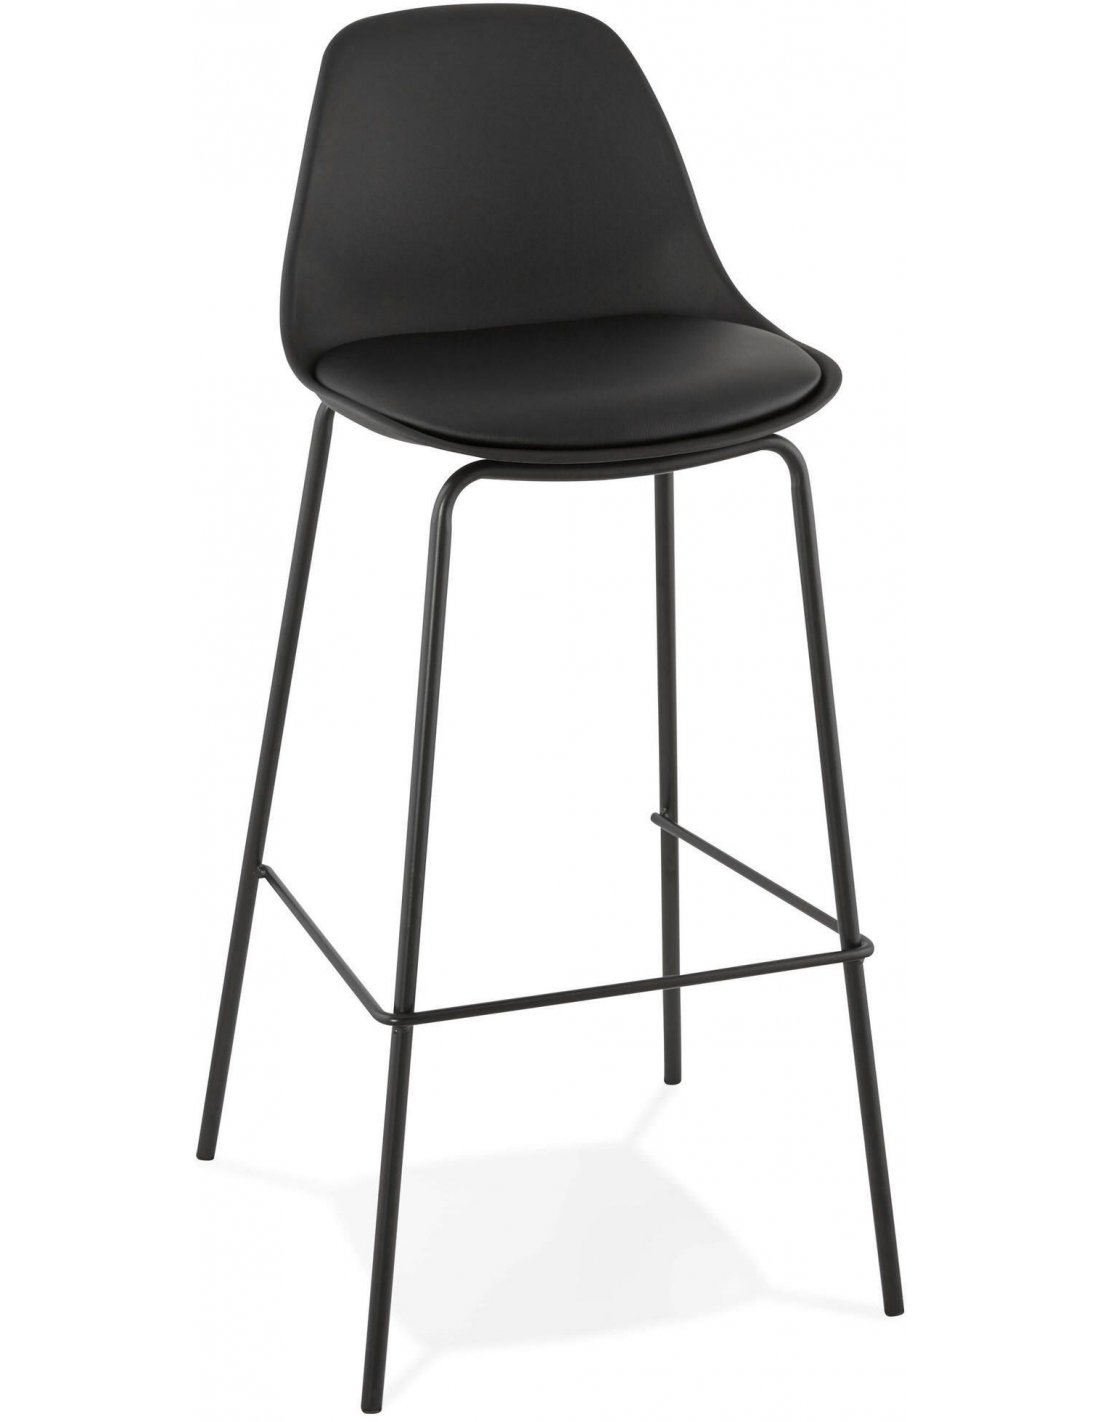 Tabouret De Bar Design Polymère Noir Escal à 7116 Chez Recollection